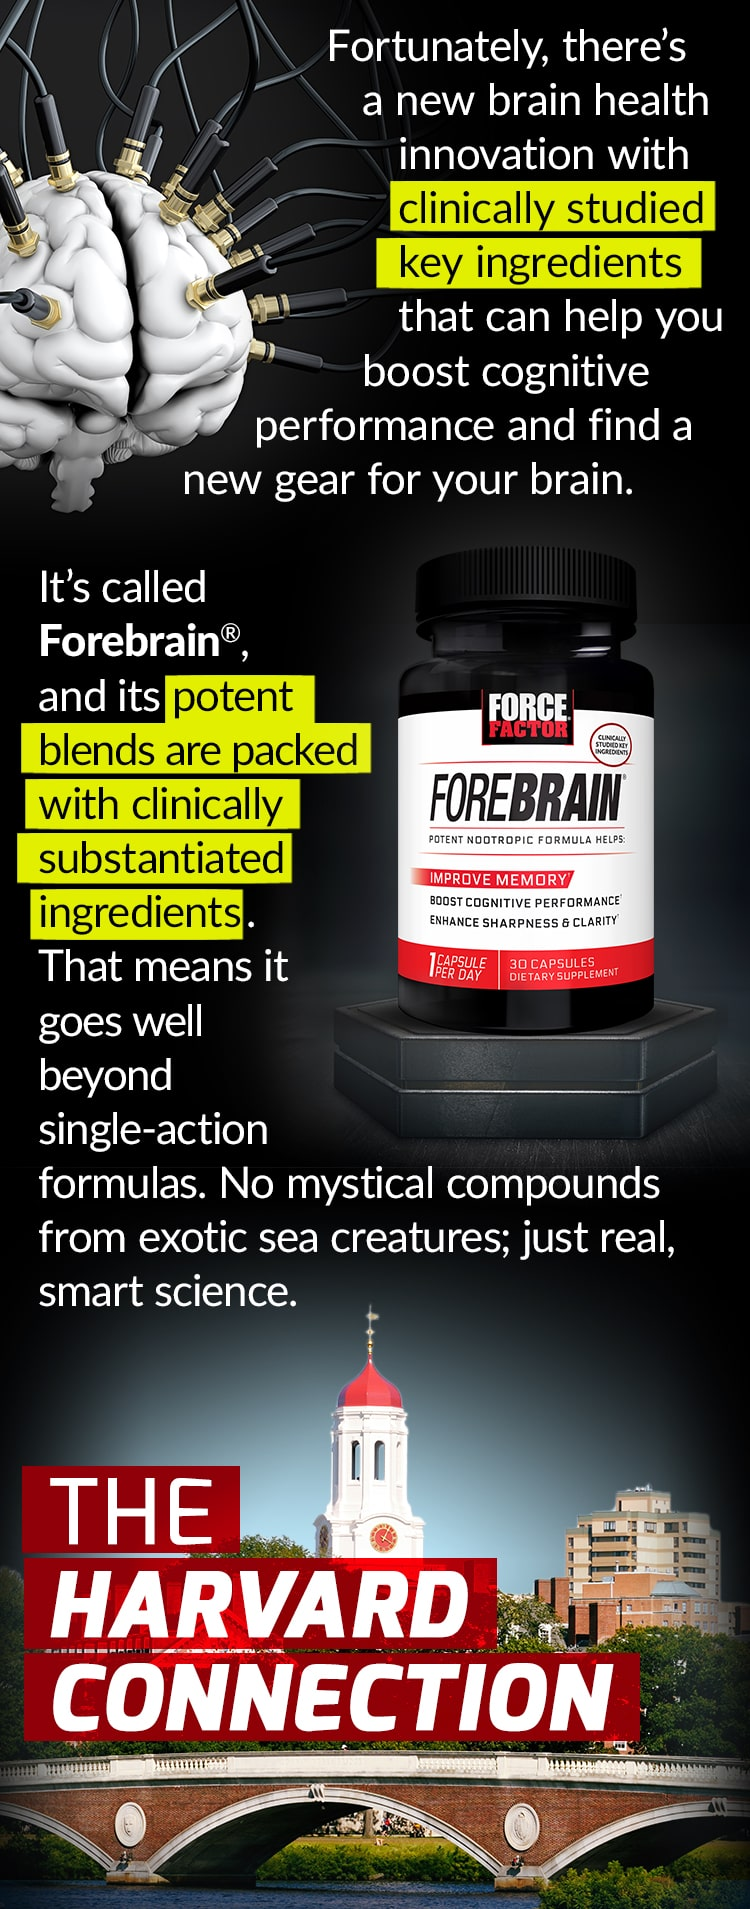 Fortunately, there's a new brain health innovation with clinically studied key ingredients that can help you boost cognitive performance and find a new gear for your brain. It's called Forebrain®, and its potent blends are packed with clinically substantiated ingredients. That means it goes well beyond single-action formulas. No mystical compounds from exotic sea creatures; just real, smart science. THE HARVARD CONNECTION